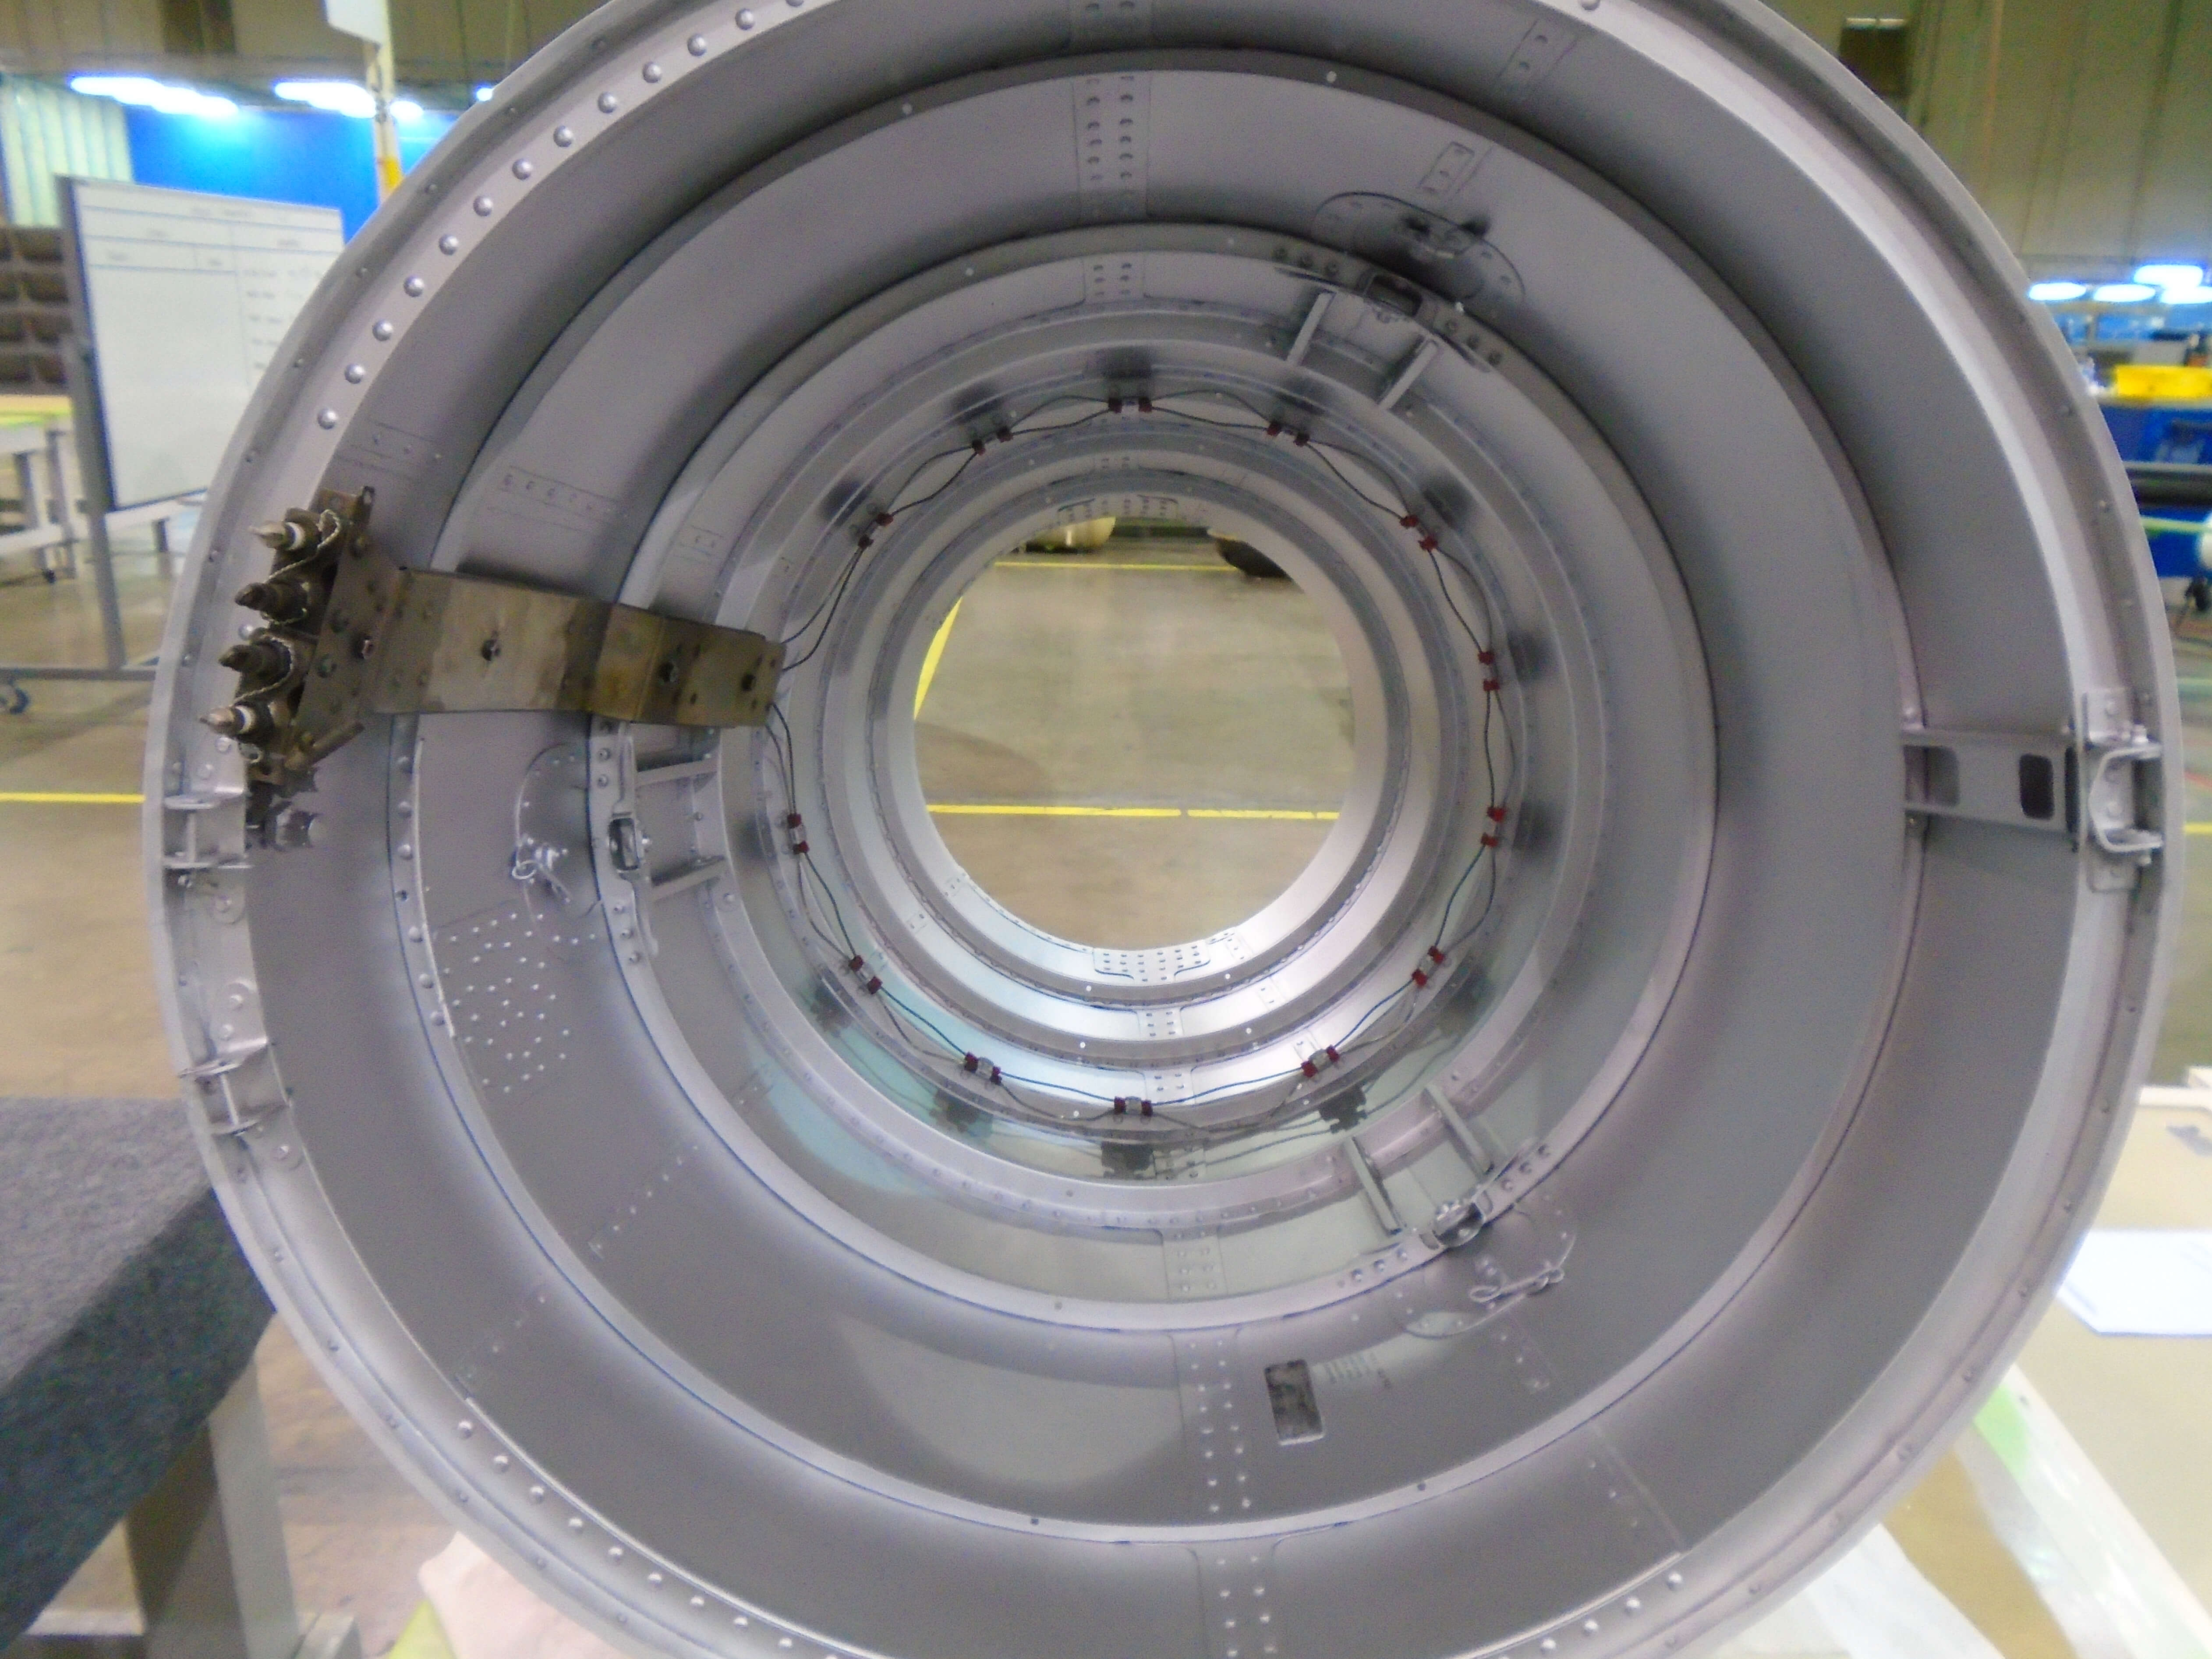 Final inspection of the inner surface of a CRJ 100/200 Exhaust Nozzle before shipping